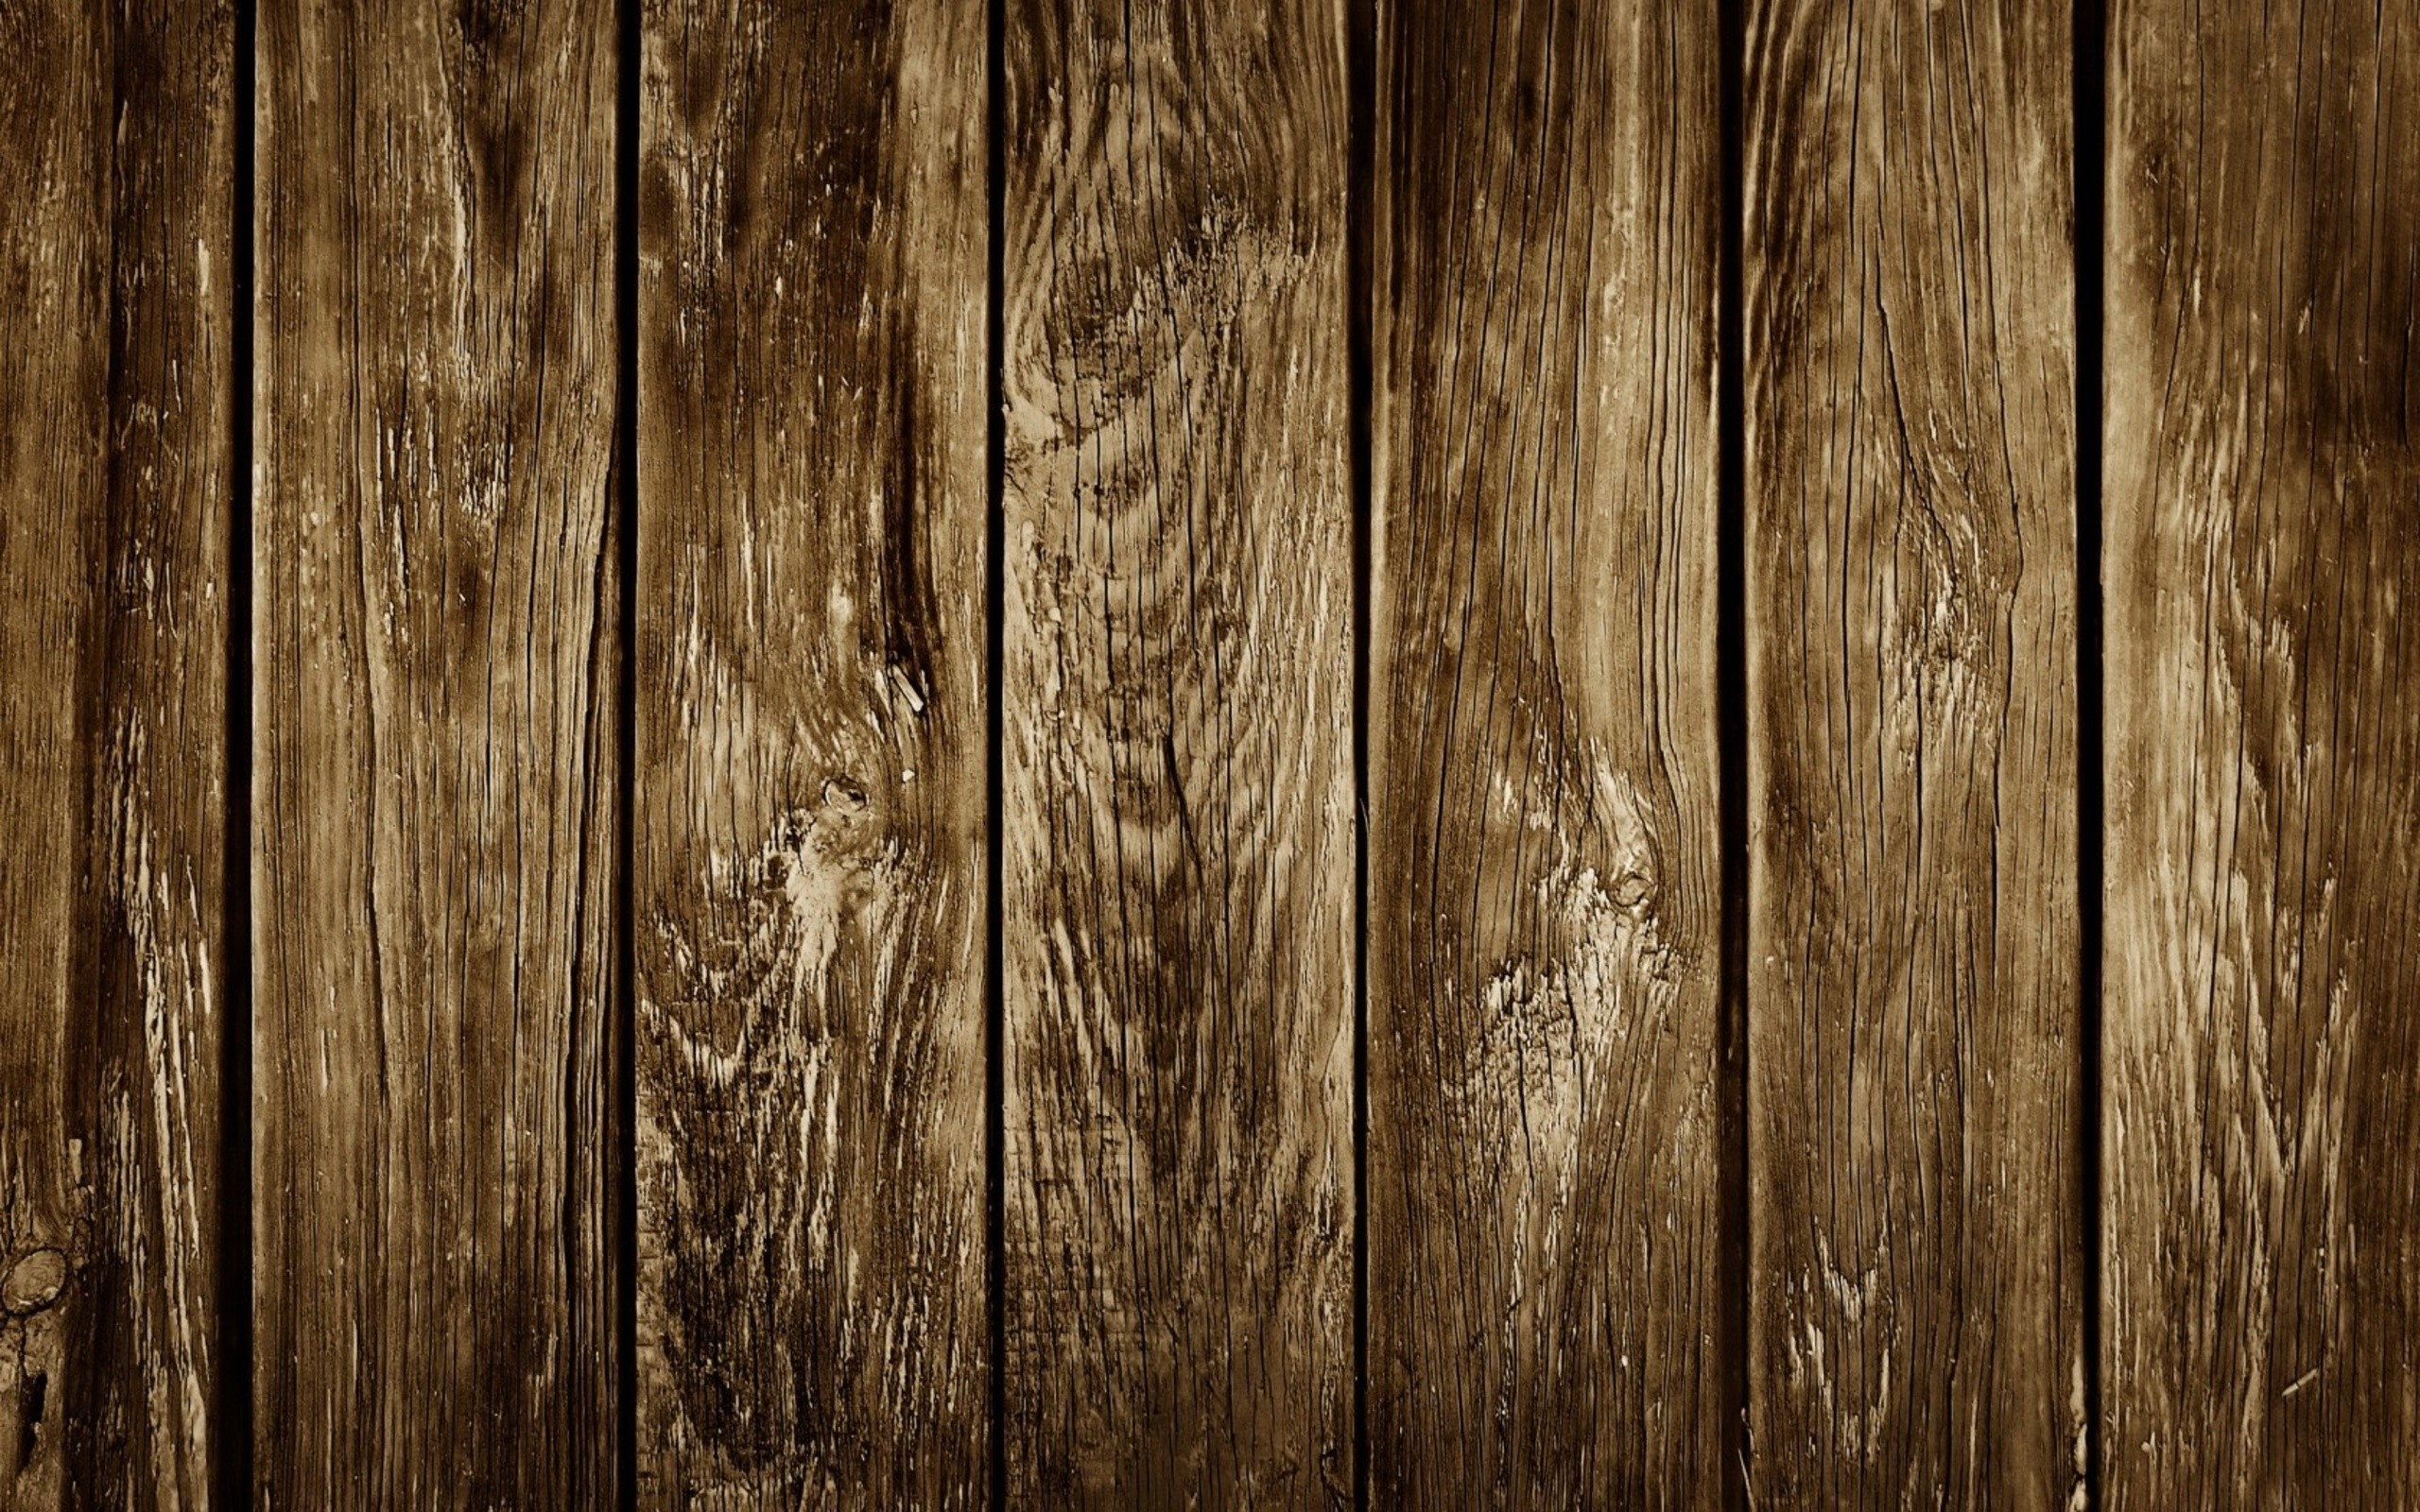 Vintage Rustic Wood background With Lace \u00b7\u2460 Download free cool full HD backgrounds for desktop